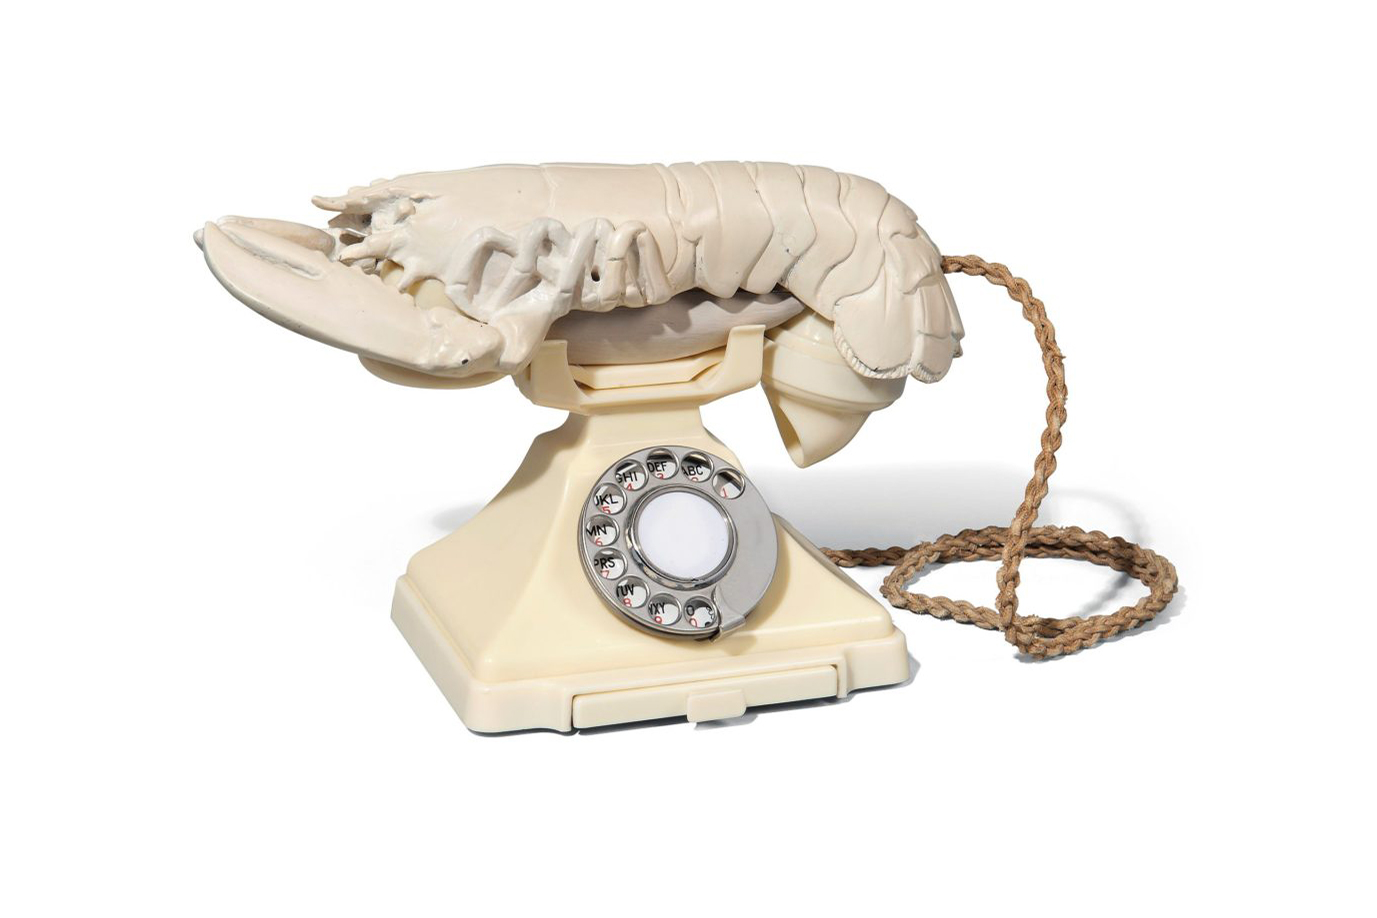 Salvador Dalí's 'Lobster Telephone' and 'Mae West Sofa' to Auction off for $800,000 USD